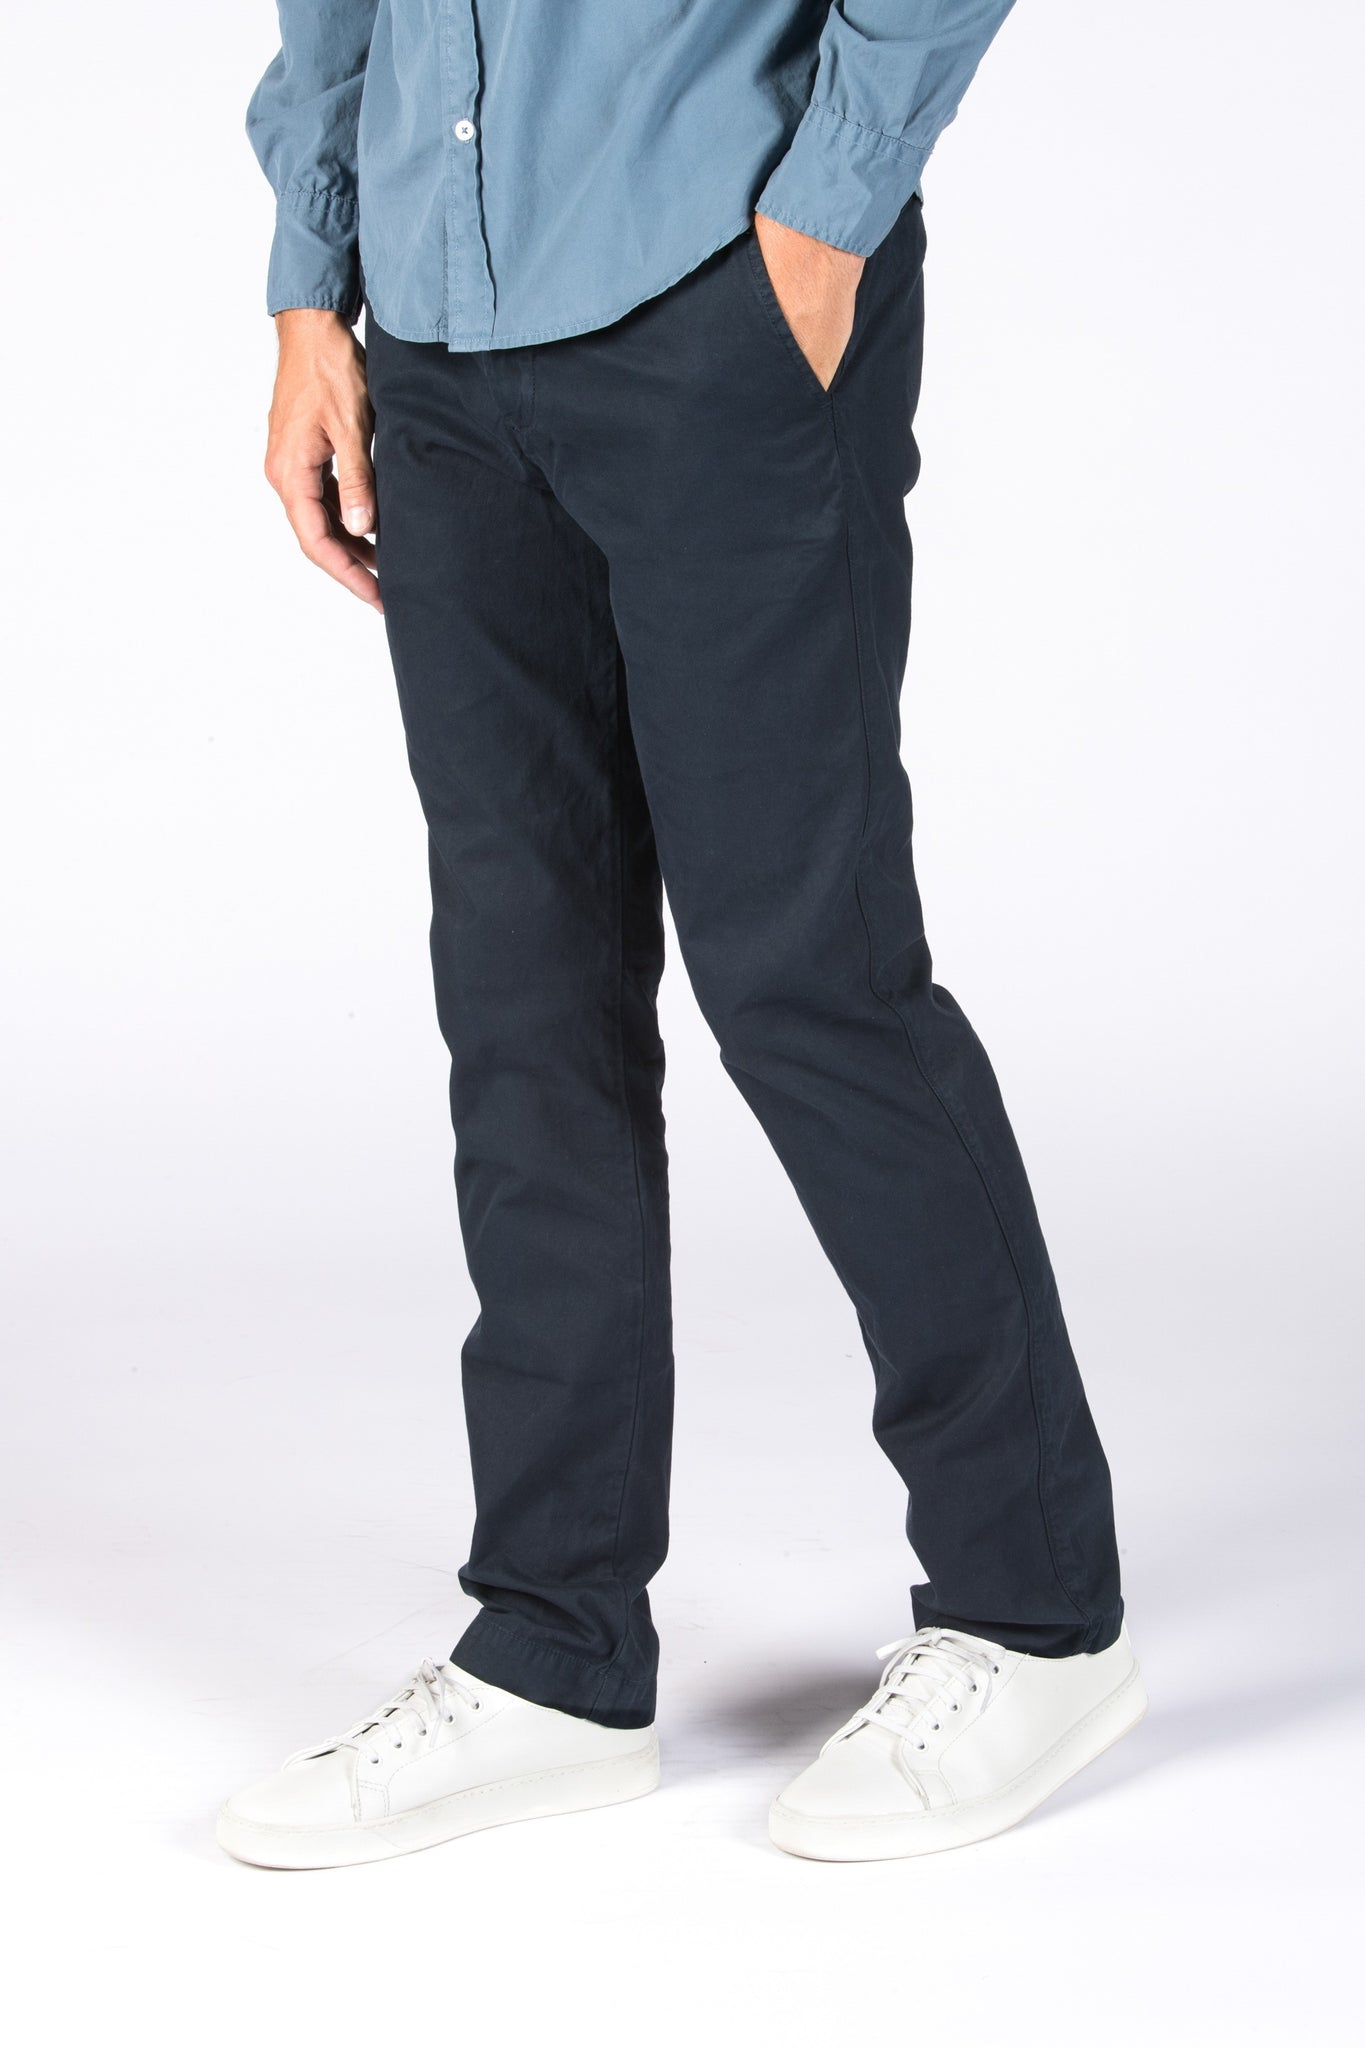 Save Khaki United Light Twill Trouser - Navy